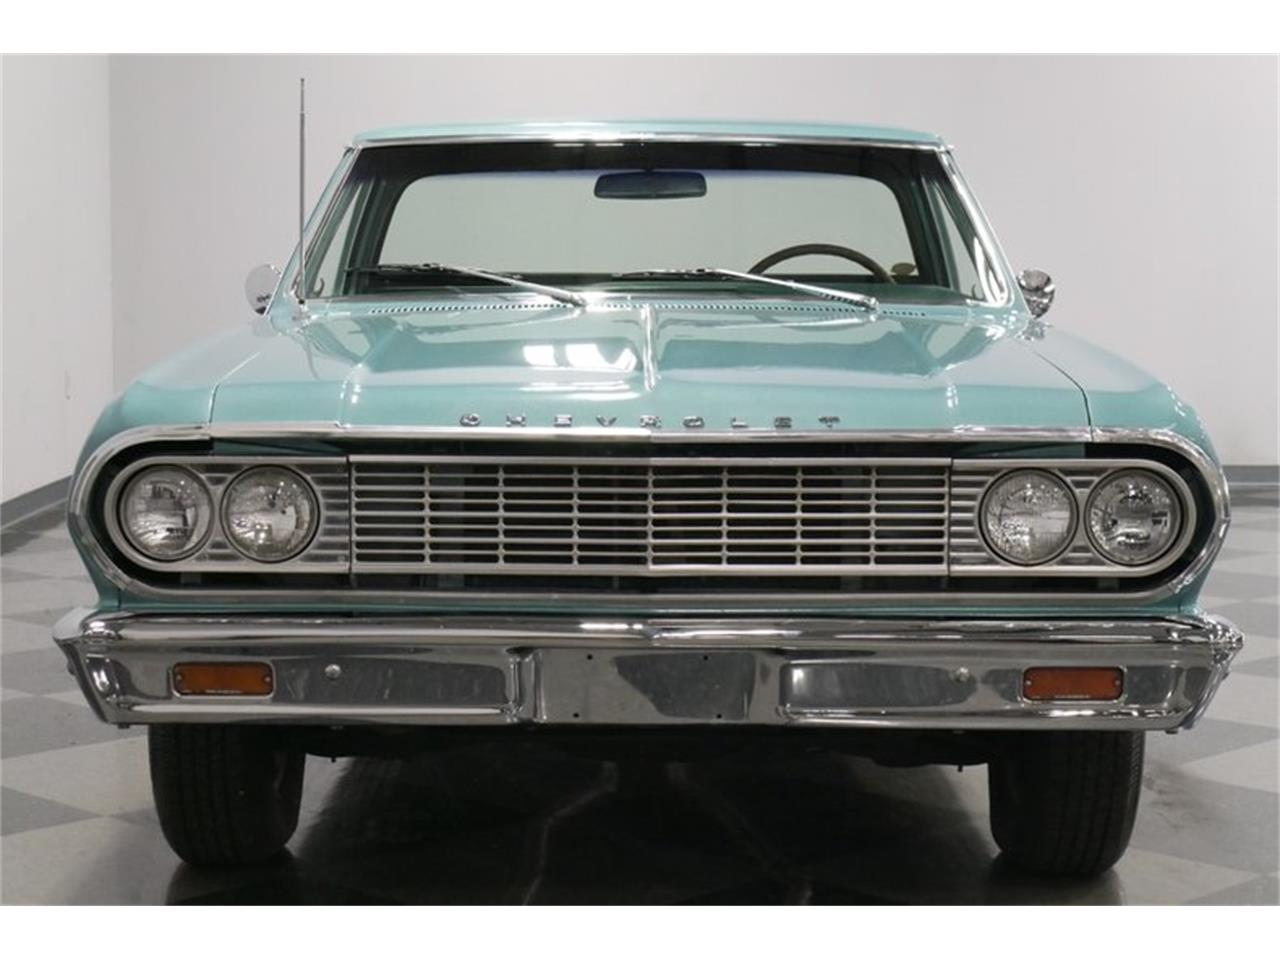 Large Picture of Classic 1964 El Camino located in Tennessee - $23,995.00 Offered by Streetside Classics - Nashville - QI3A